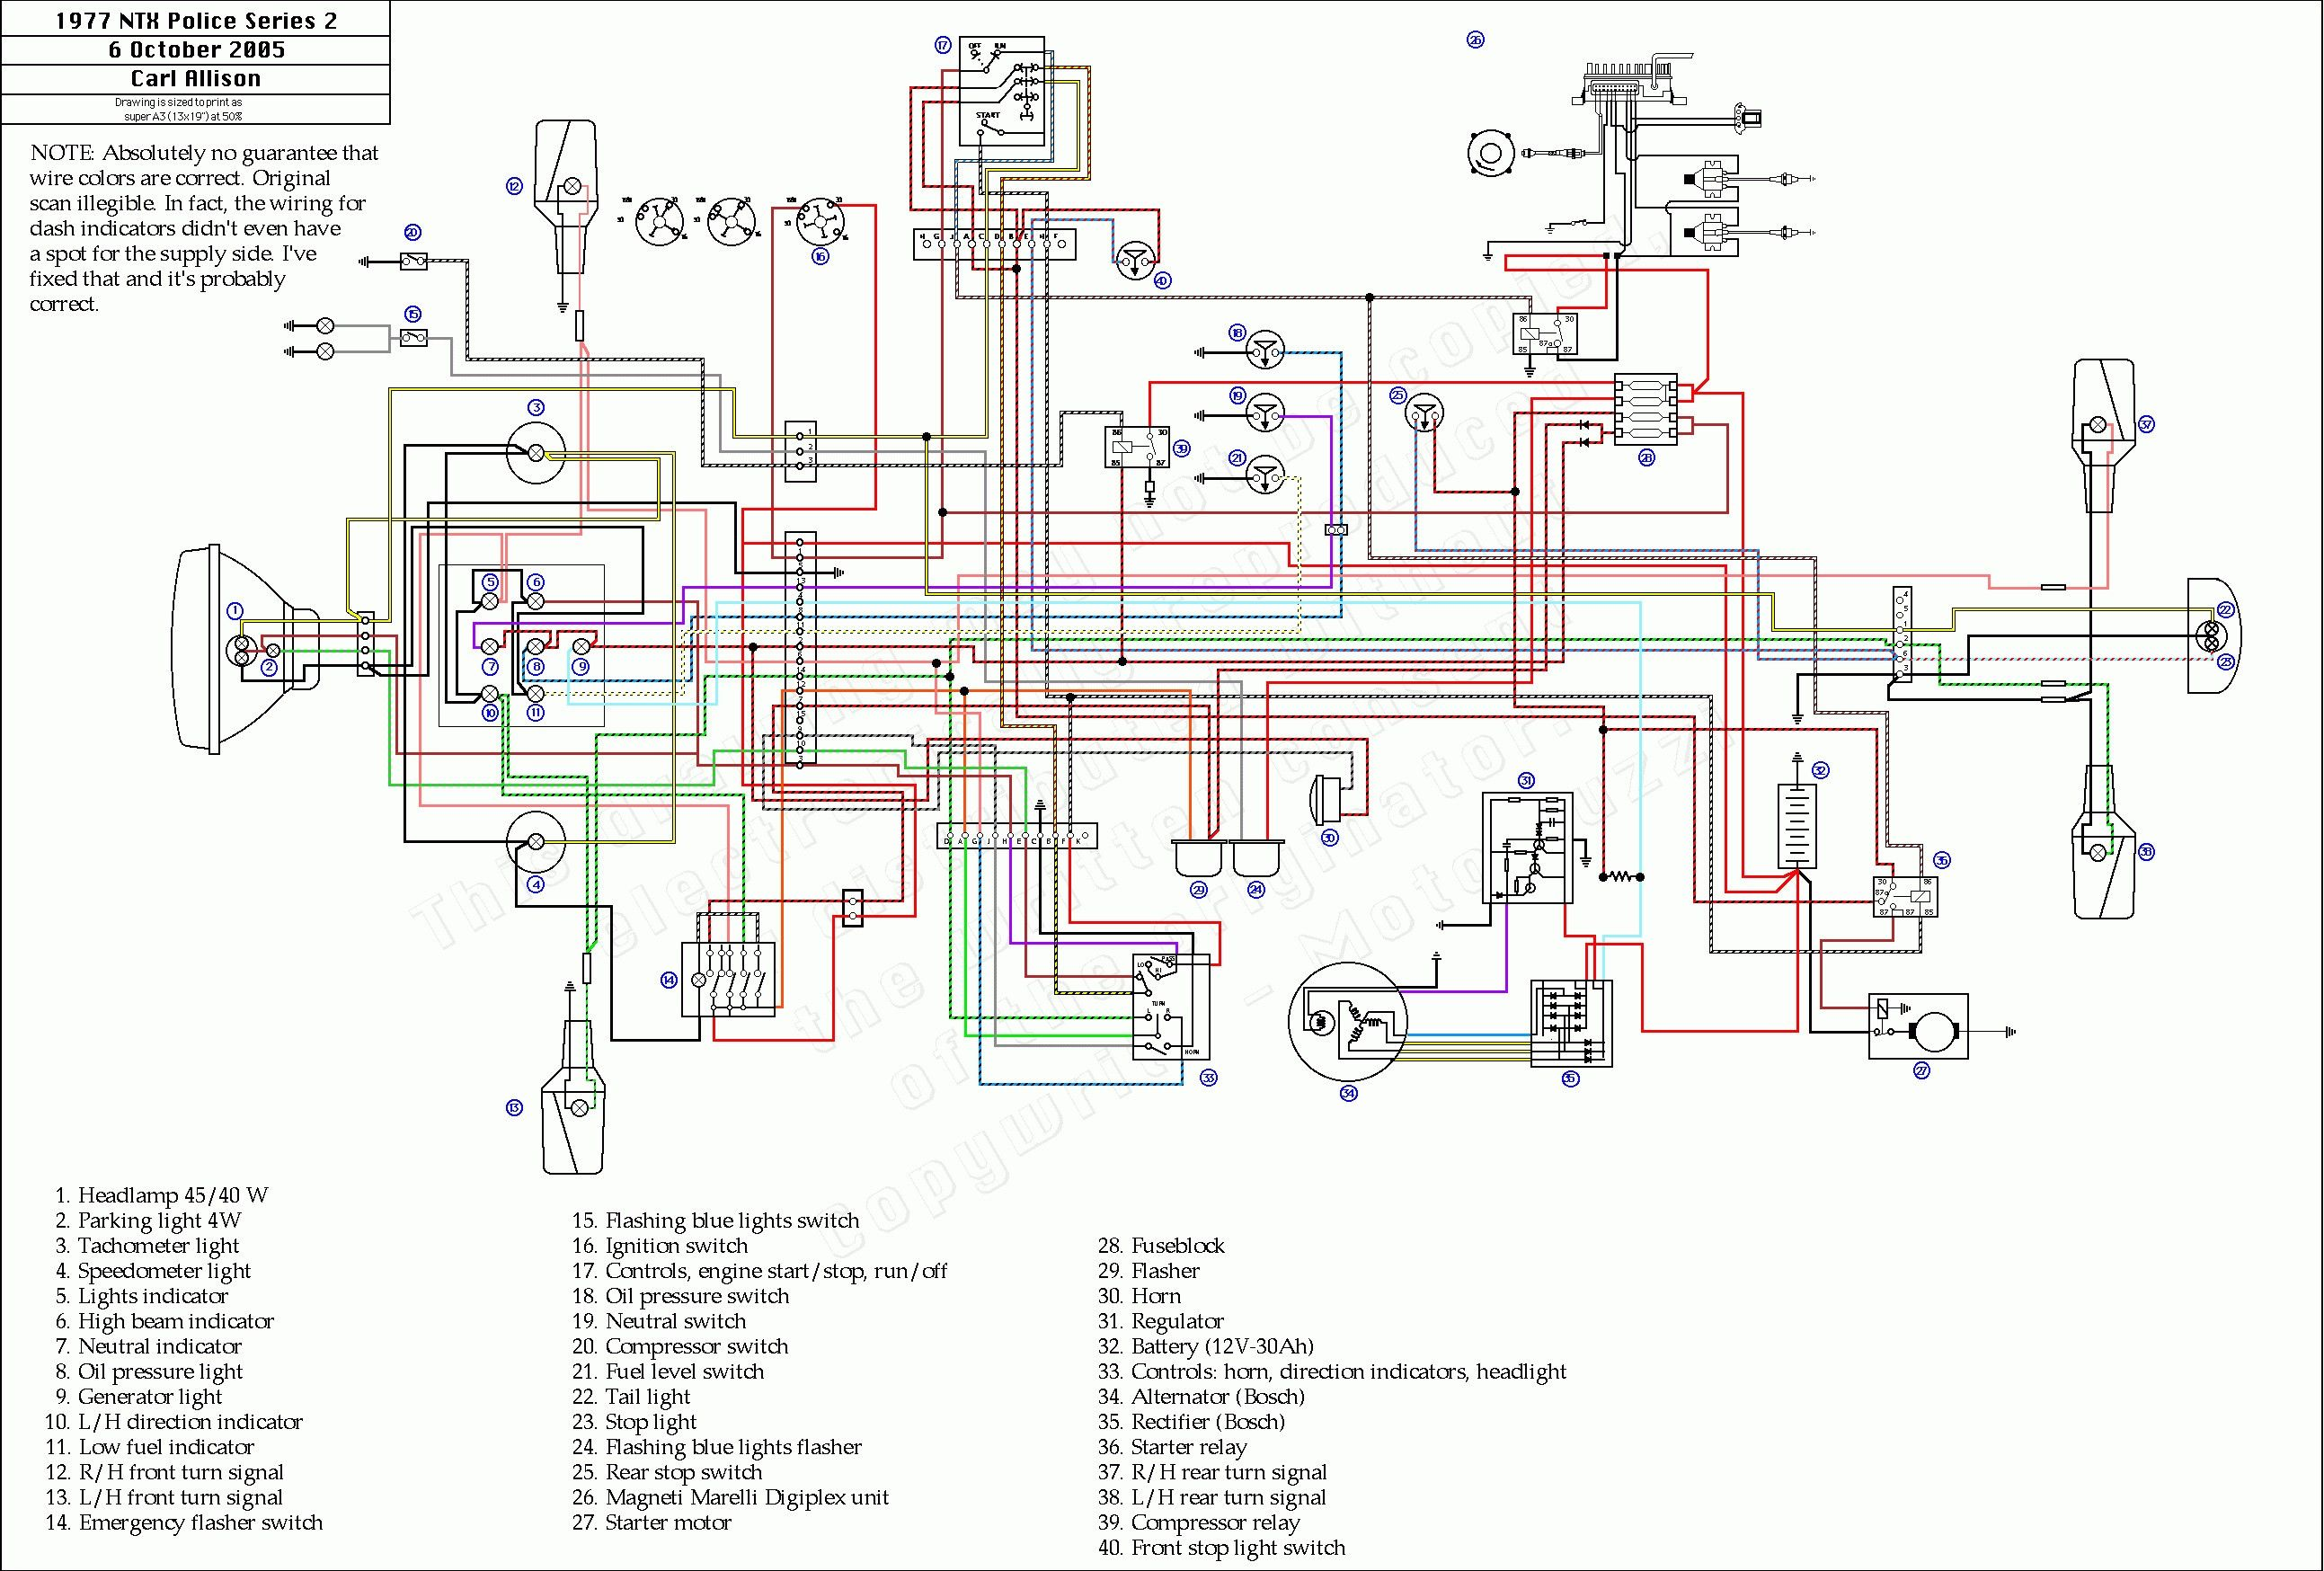 New Wiring Diagram For A Bosch Alternator Diagrams Digramssample Diagramimages Wiringdiagramsample Wiringdiagram Intruder 125 Auto Vespa Lambreta